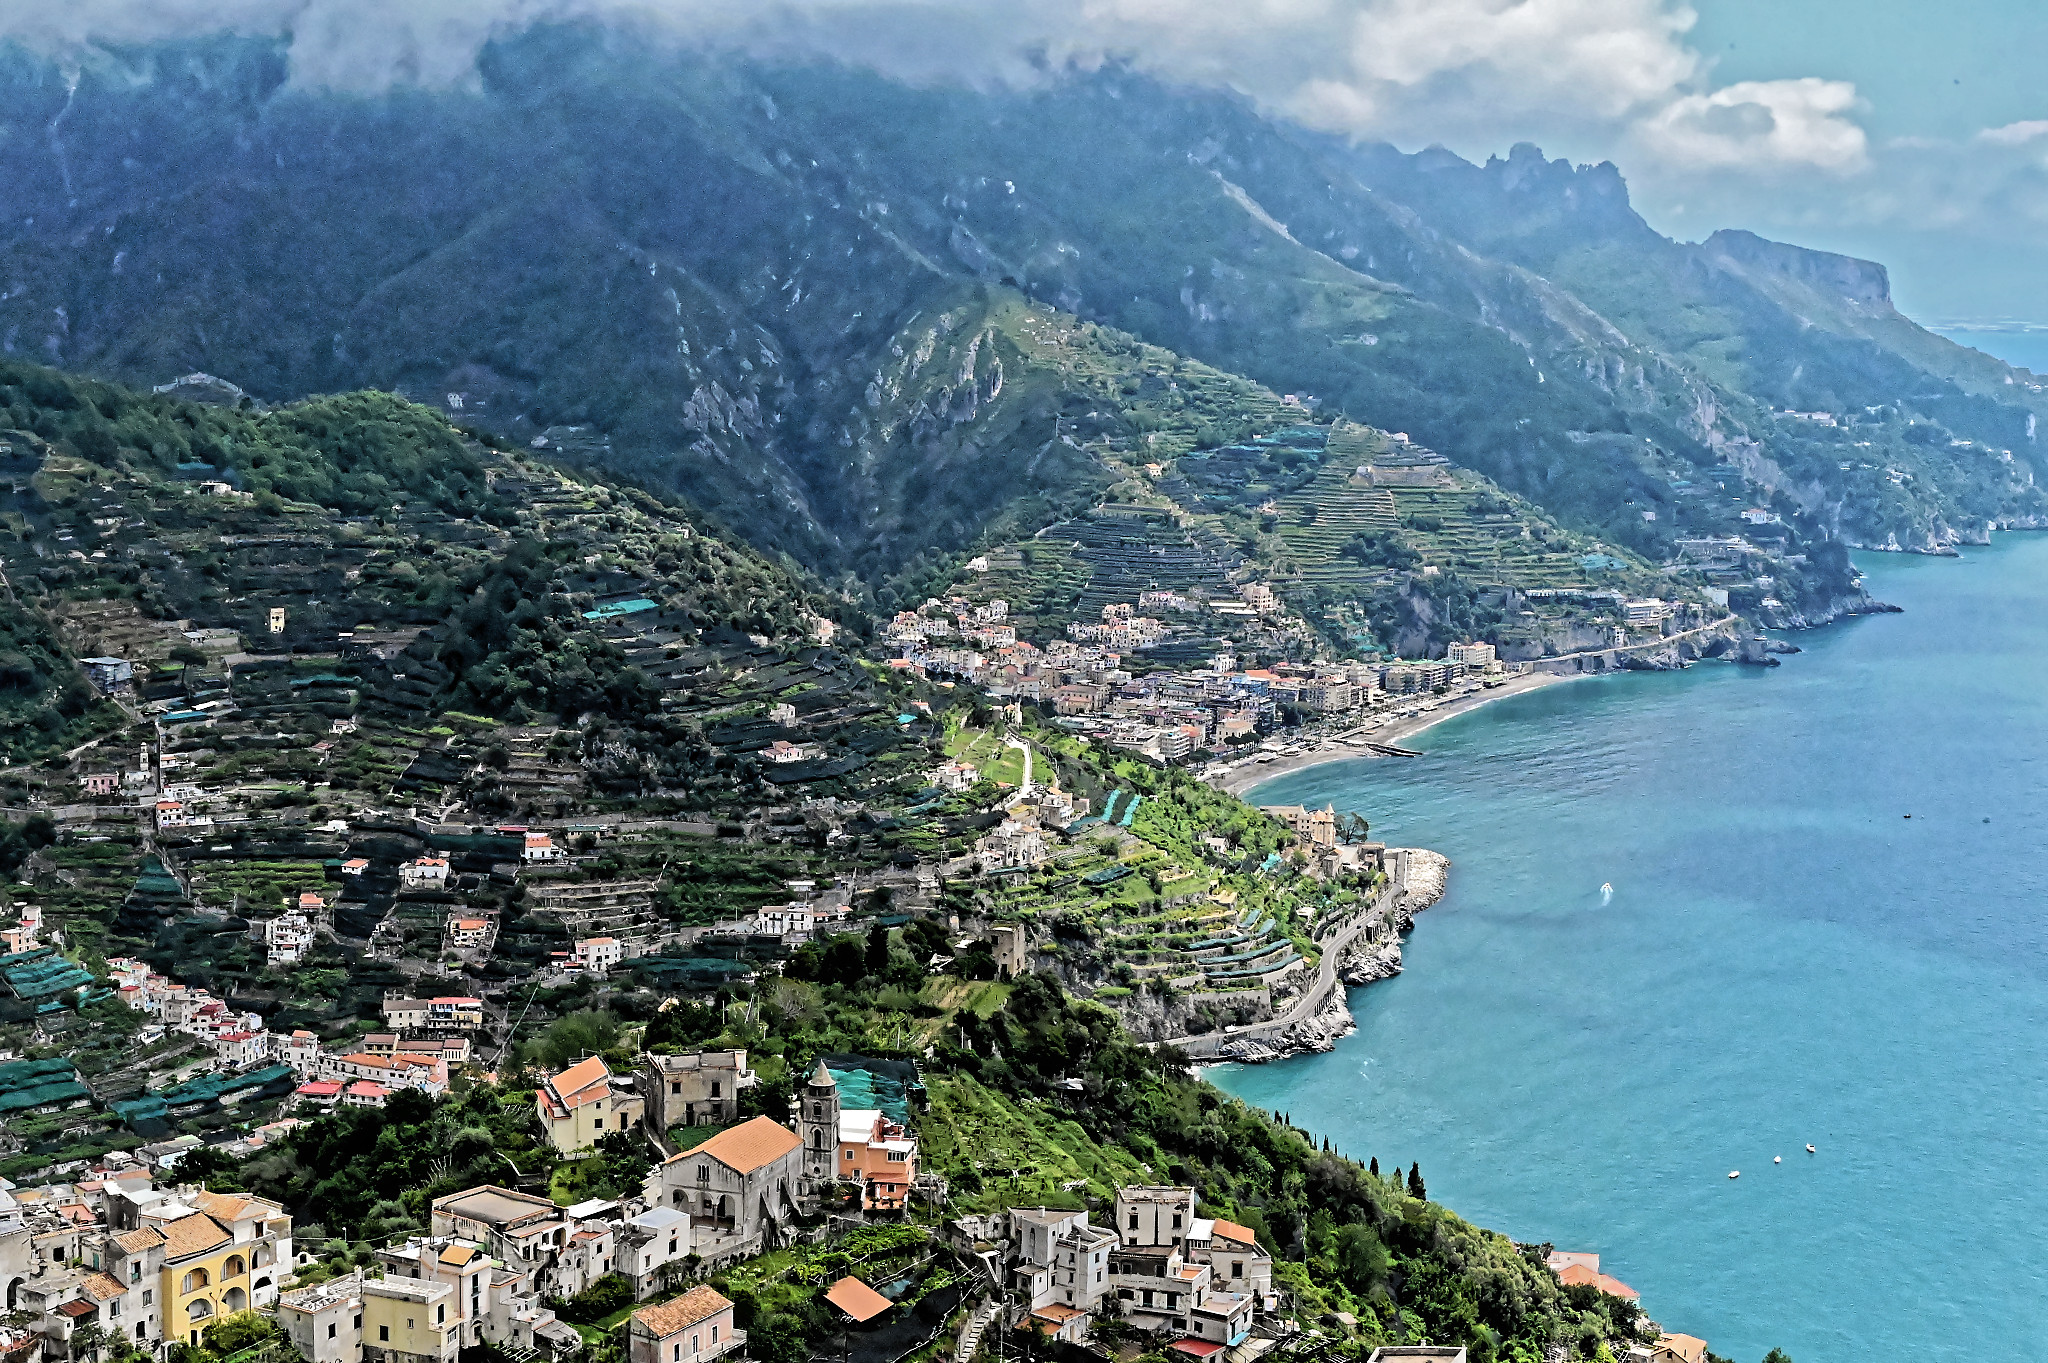 Amalfi Coast from Revello